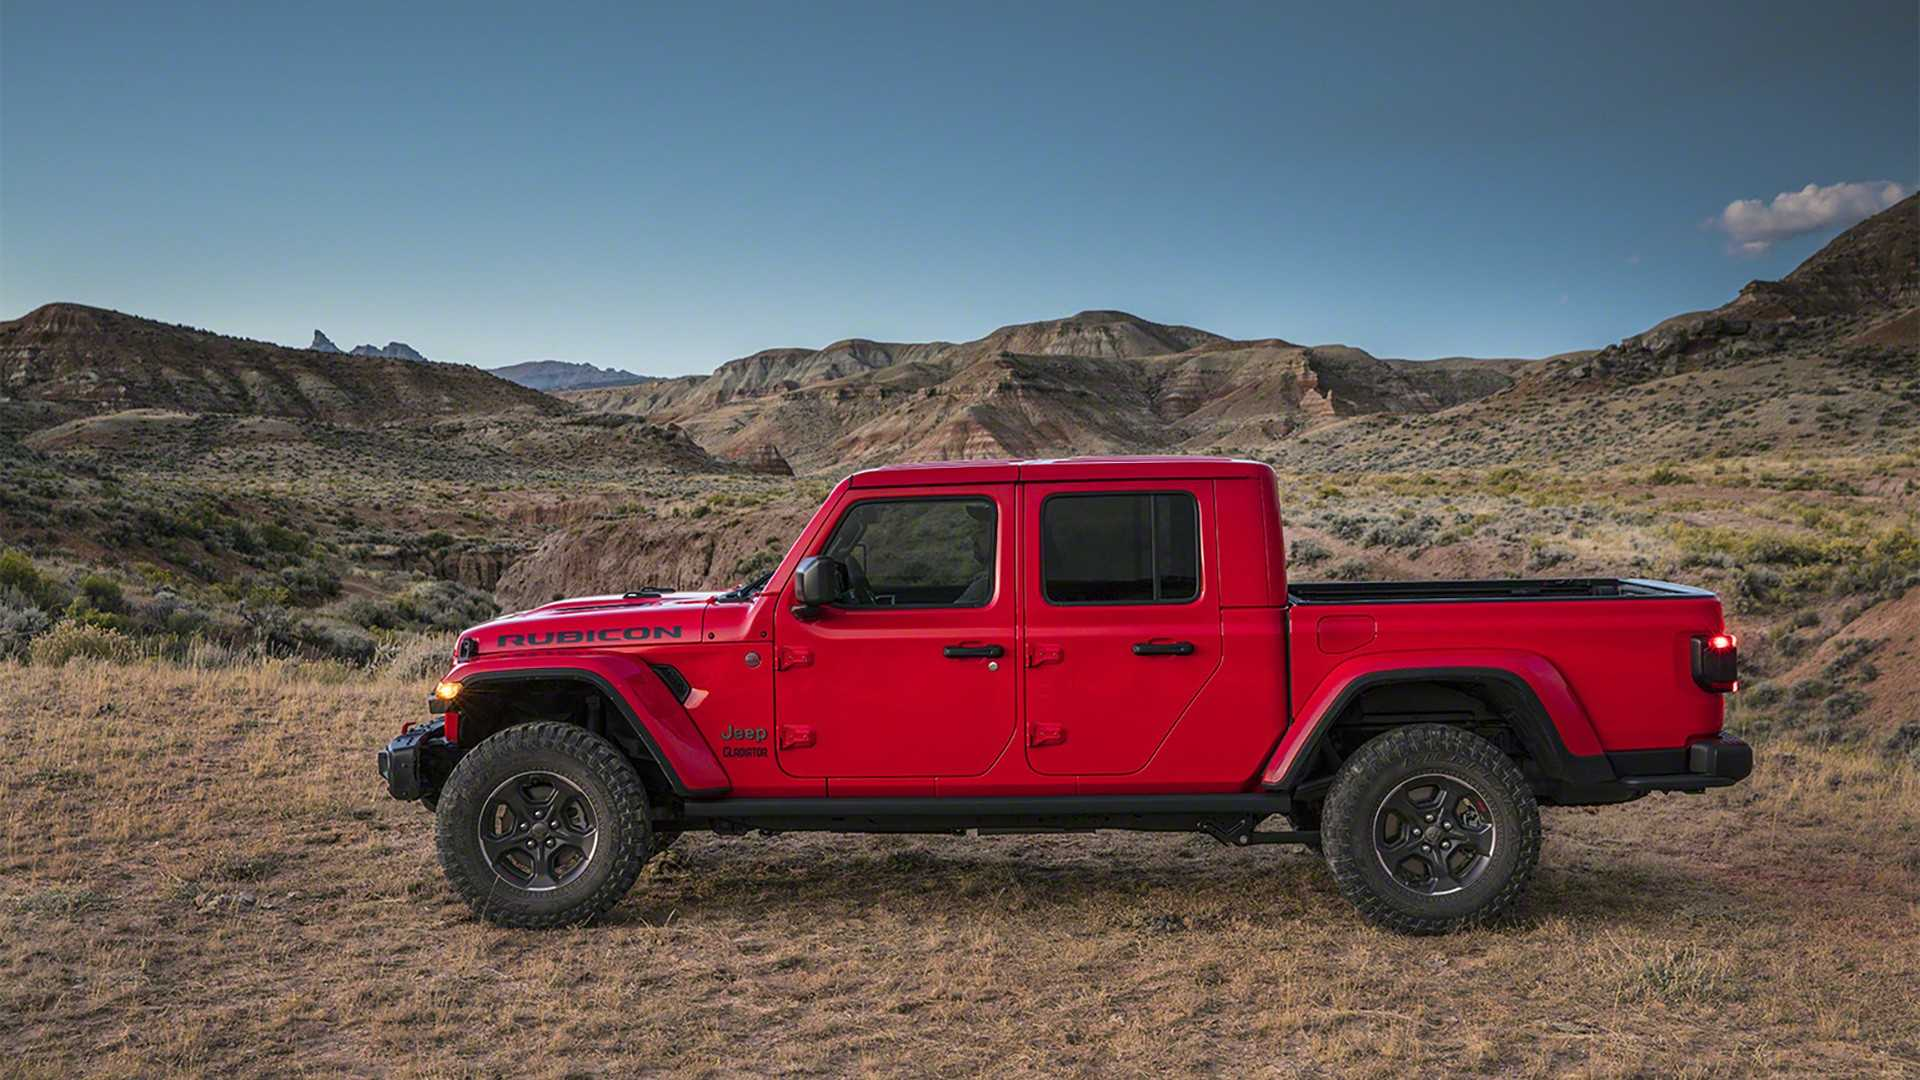 Jeep Configurator For 2020 Gladiator Pickup Truck Goes